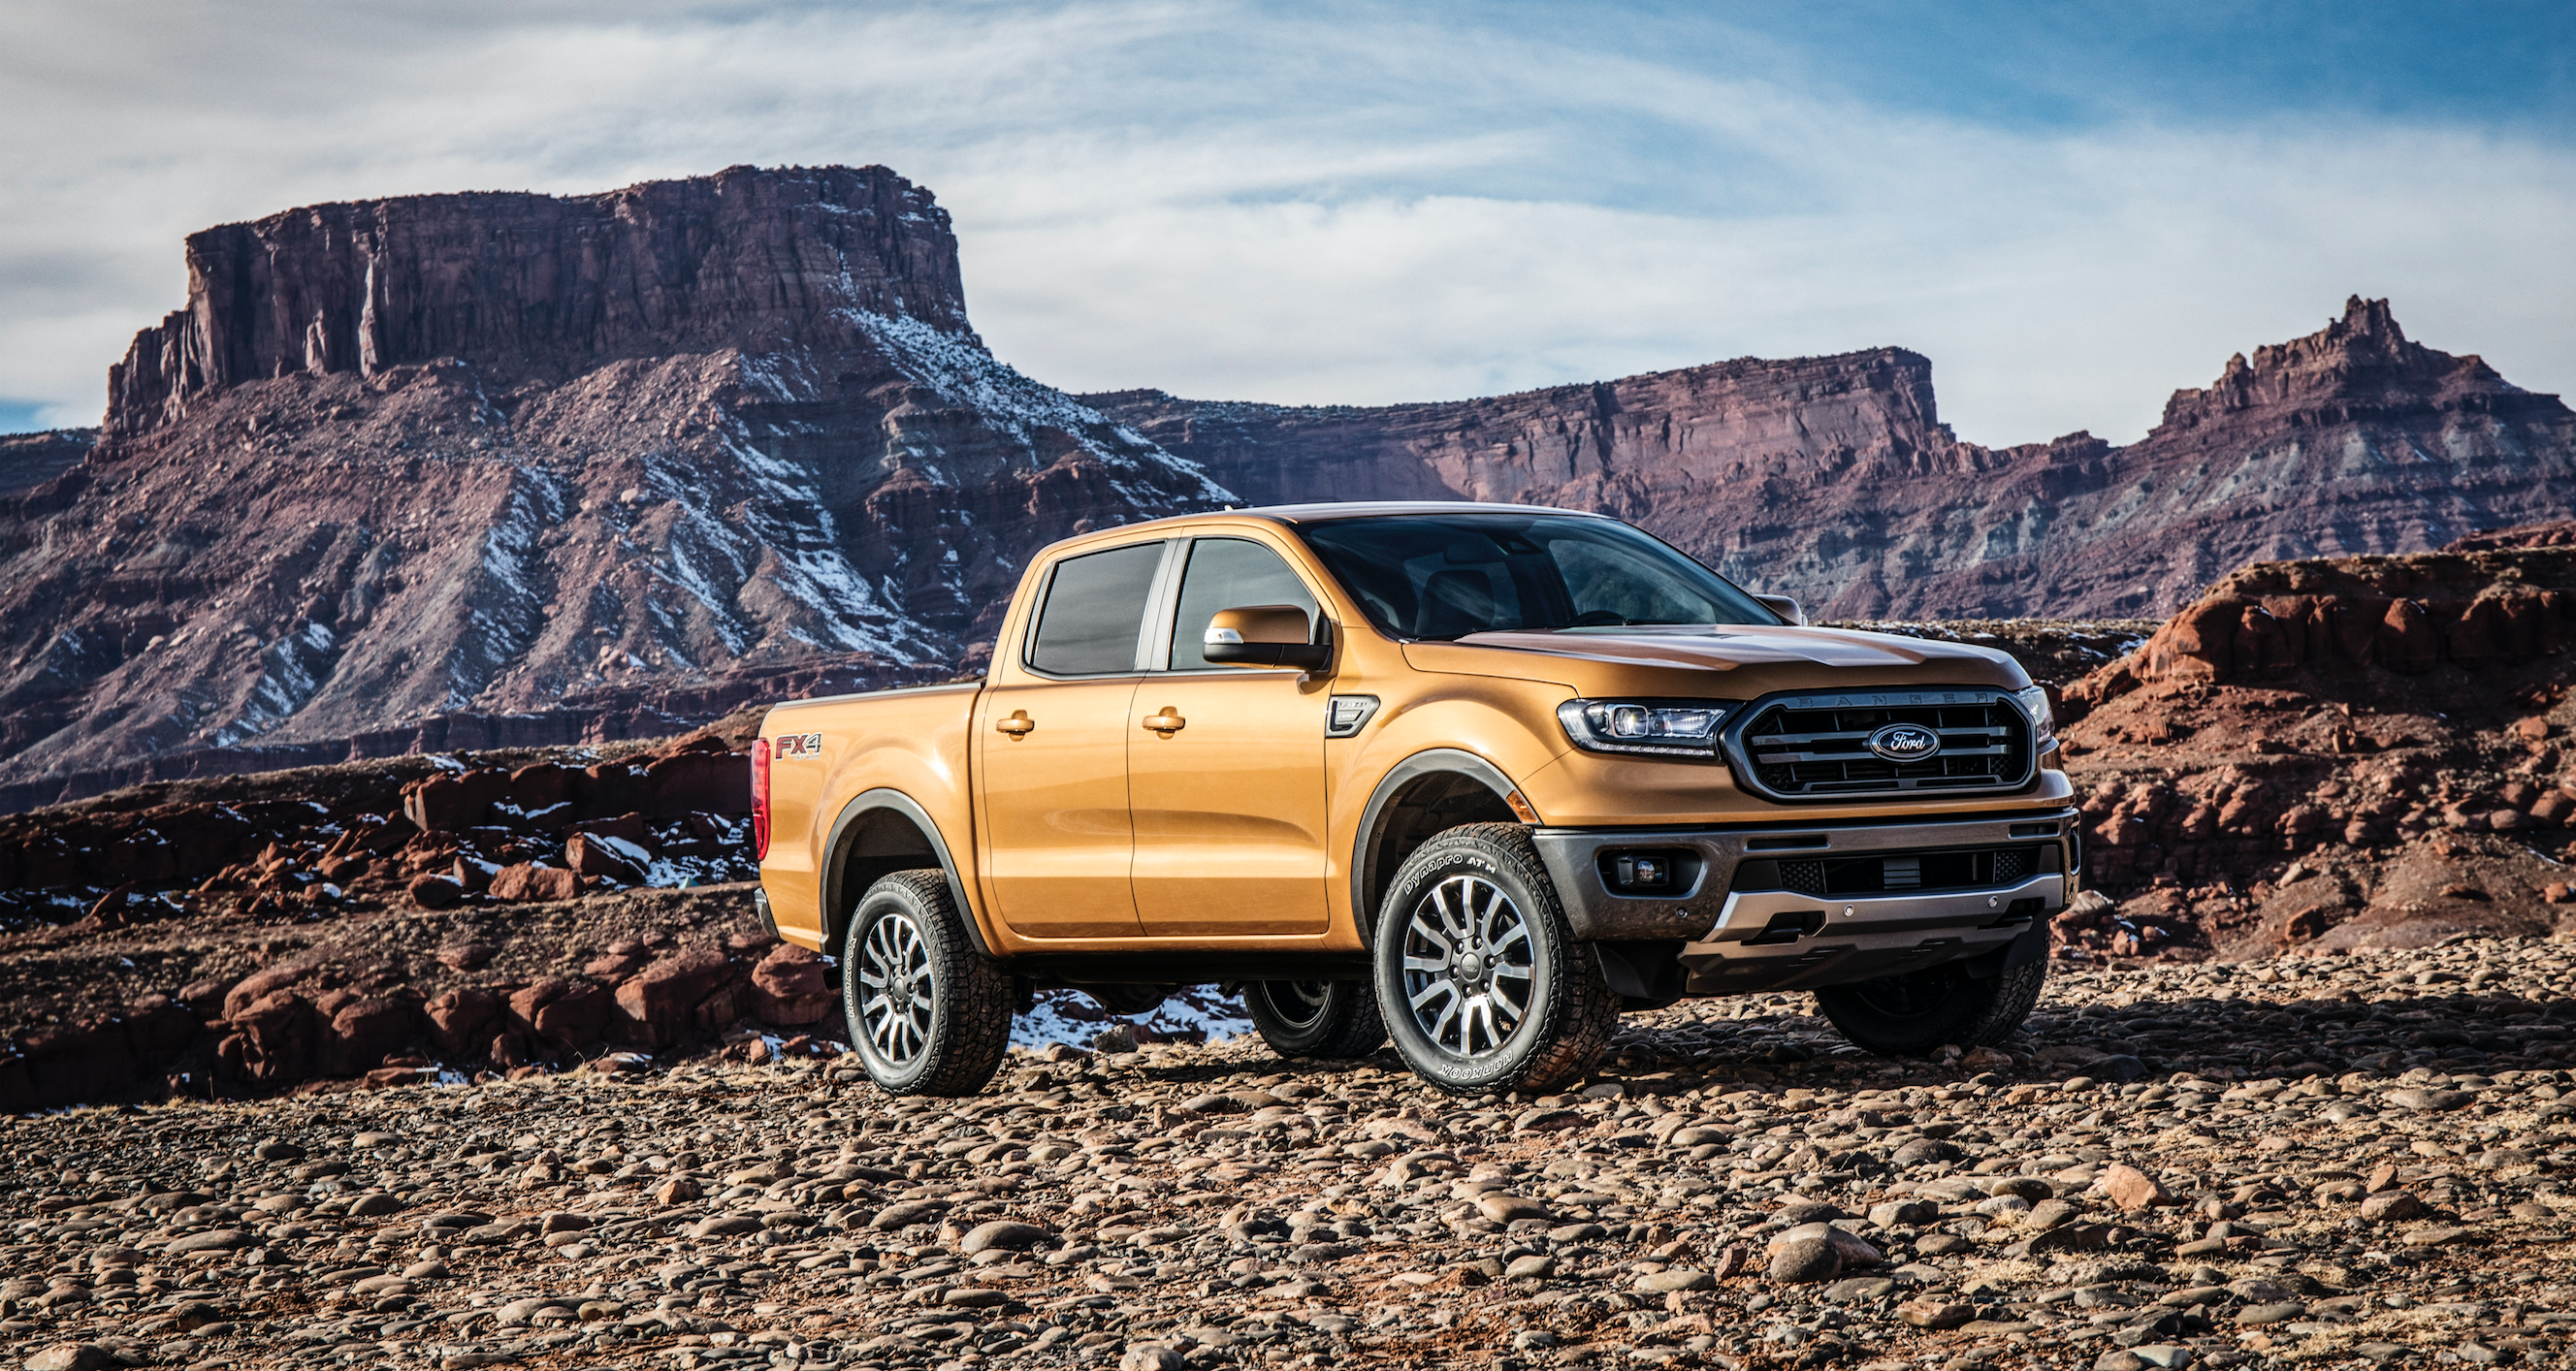 2019 Ford Ranger unleashes more capability & s segment first 10